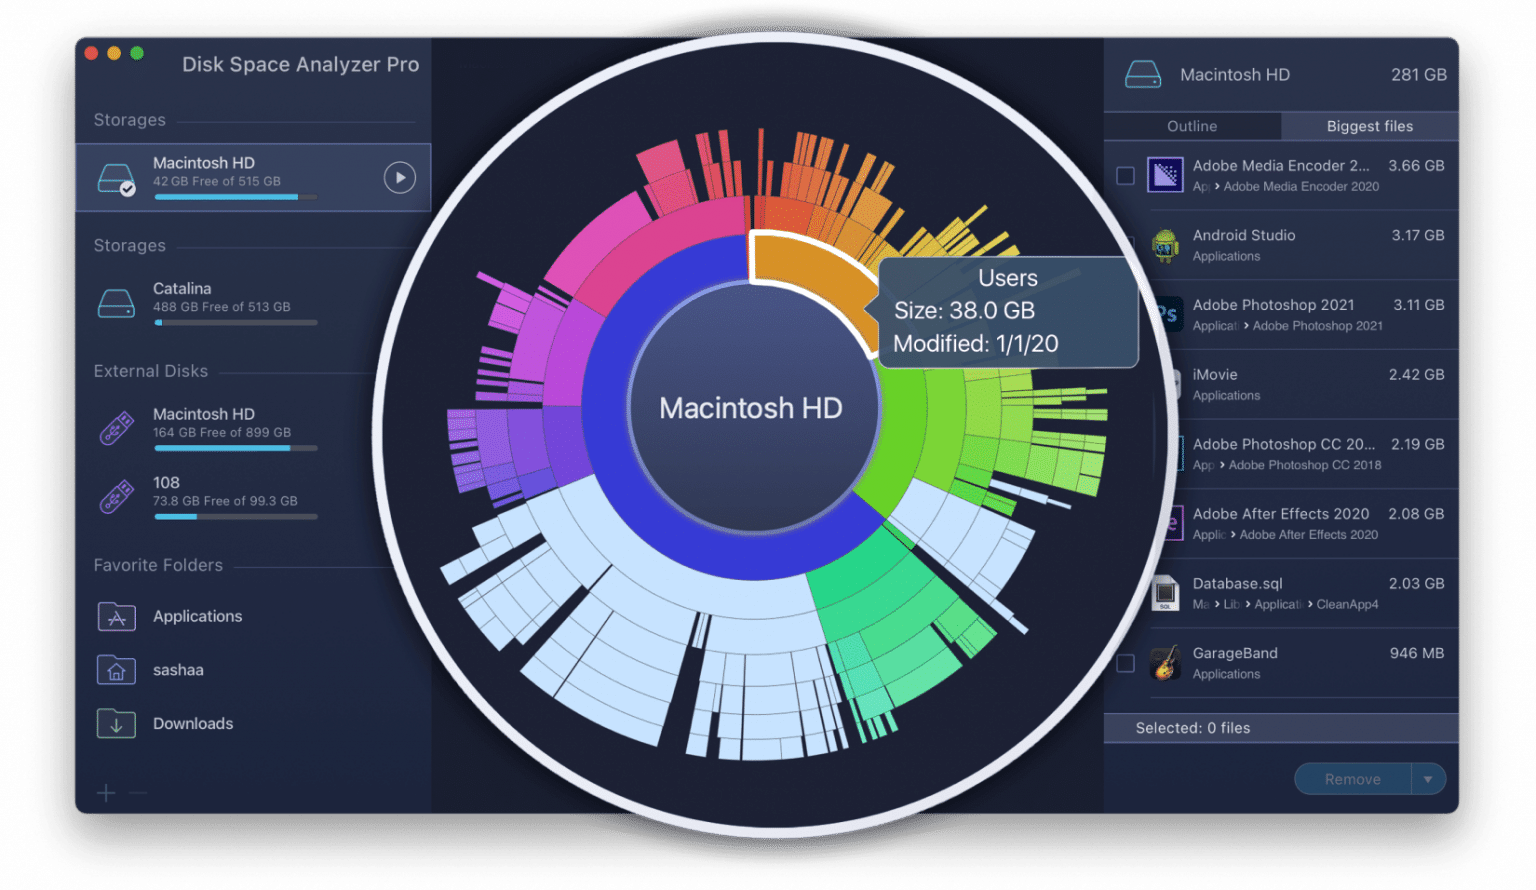 Disk Space Analyzer with highlighted disk space usage diagram